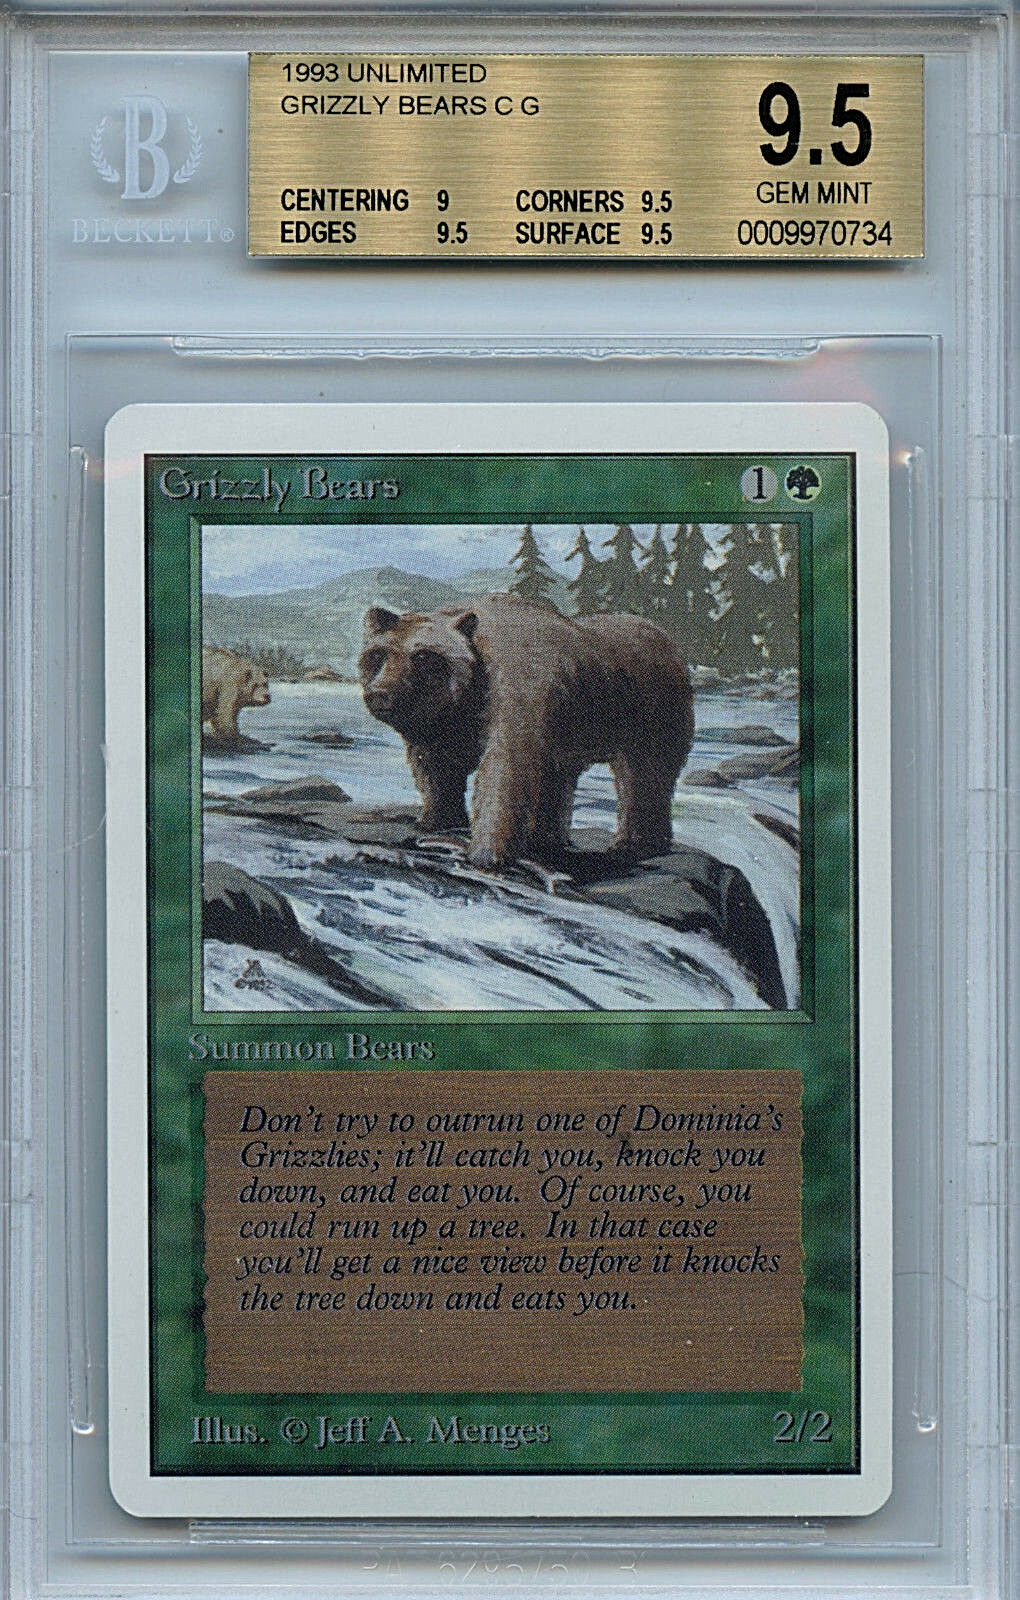 MTG Unlimited Grizzly Bears BGS 9.5 Gem Mint Card Magic the Gathering WOTC 0734